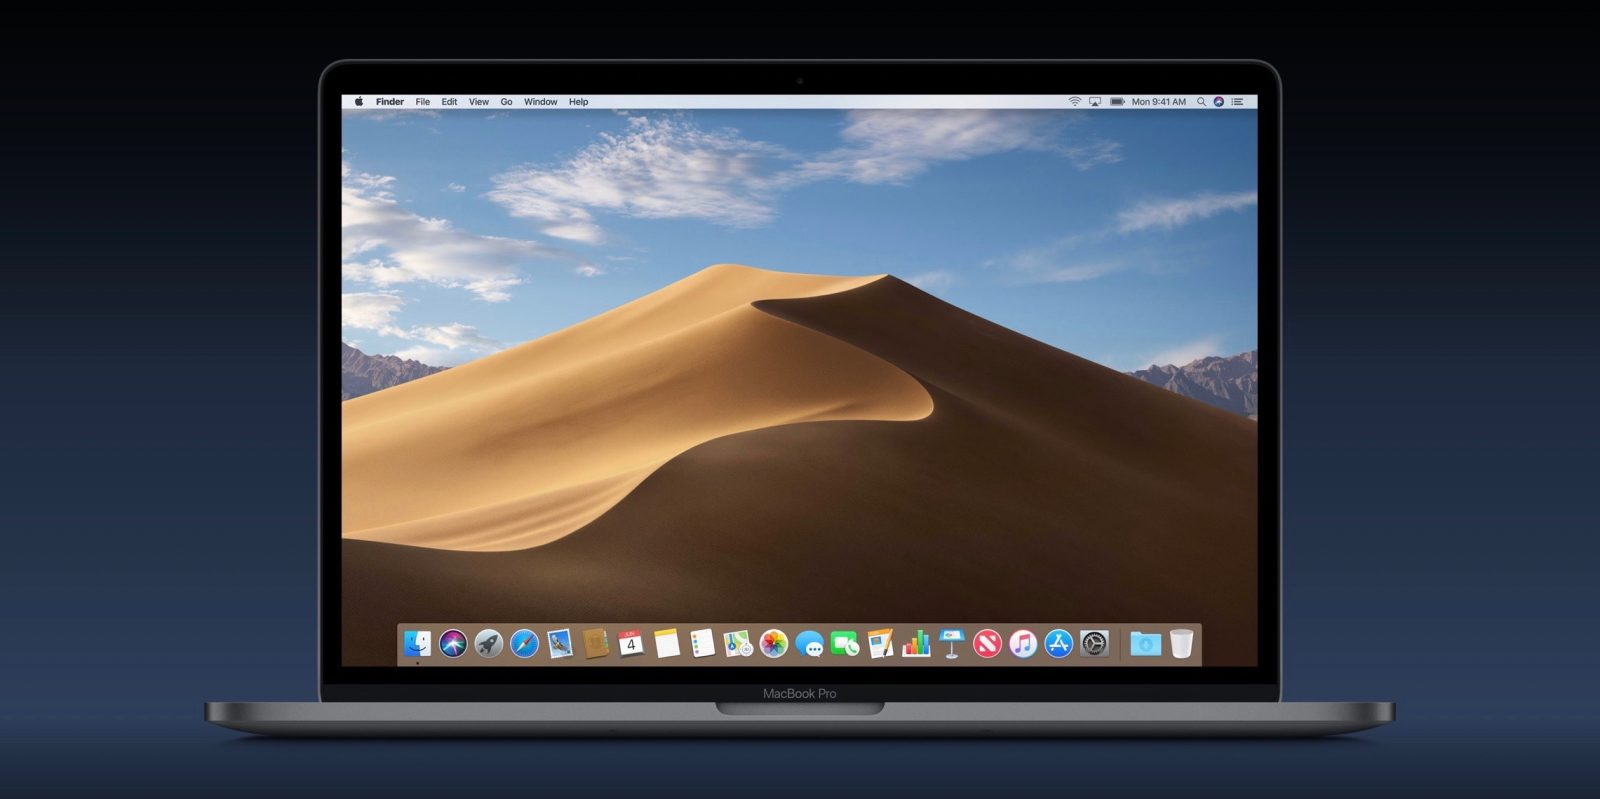 macOS Mojave includes two desert themed wallpapers download here 1600x799